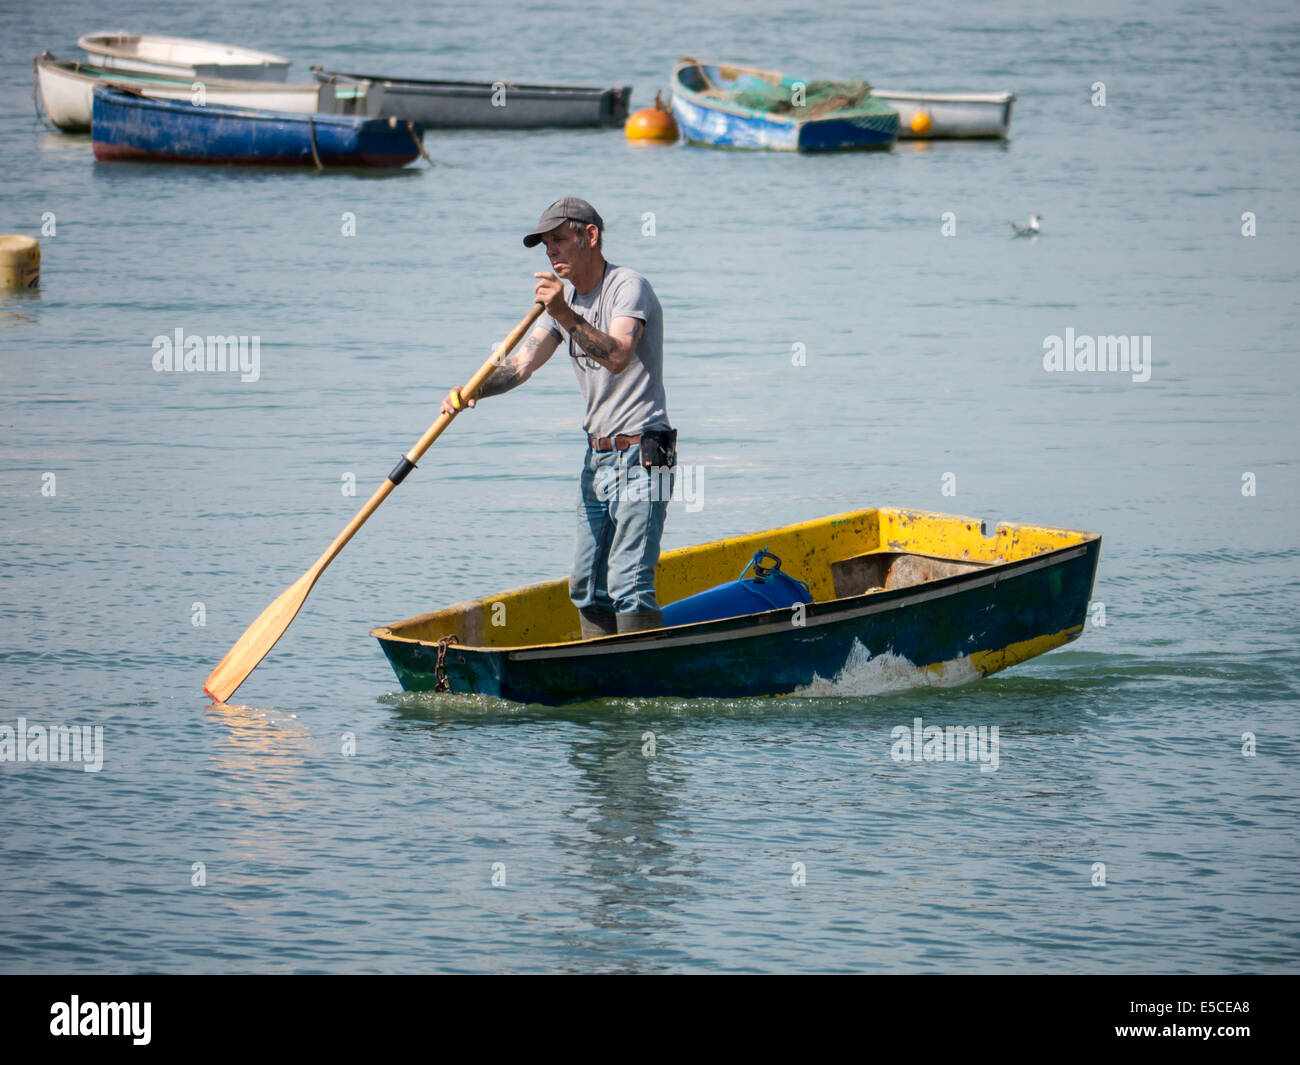 man standing in a boat rowing it to shore with one oar - Stock Image